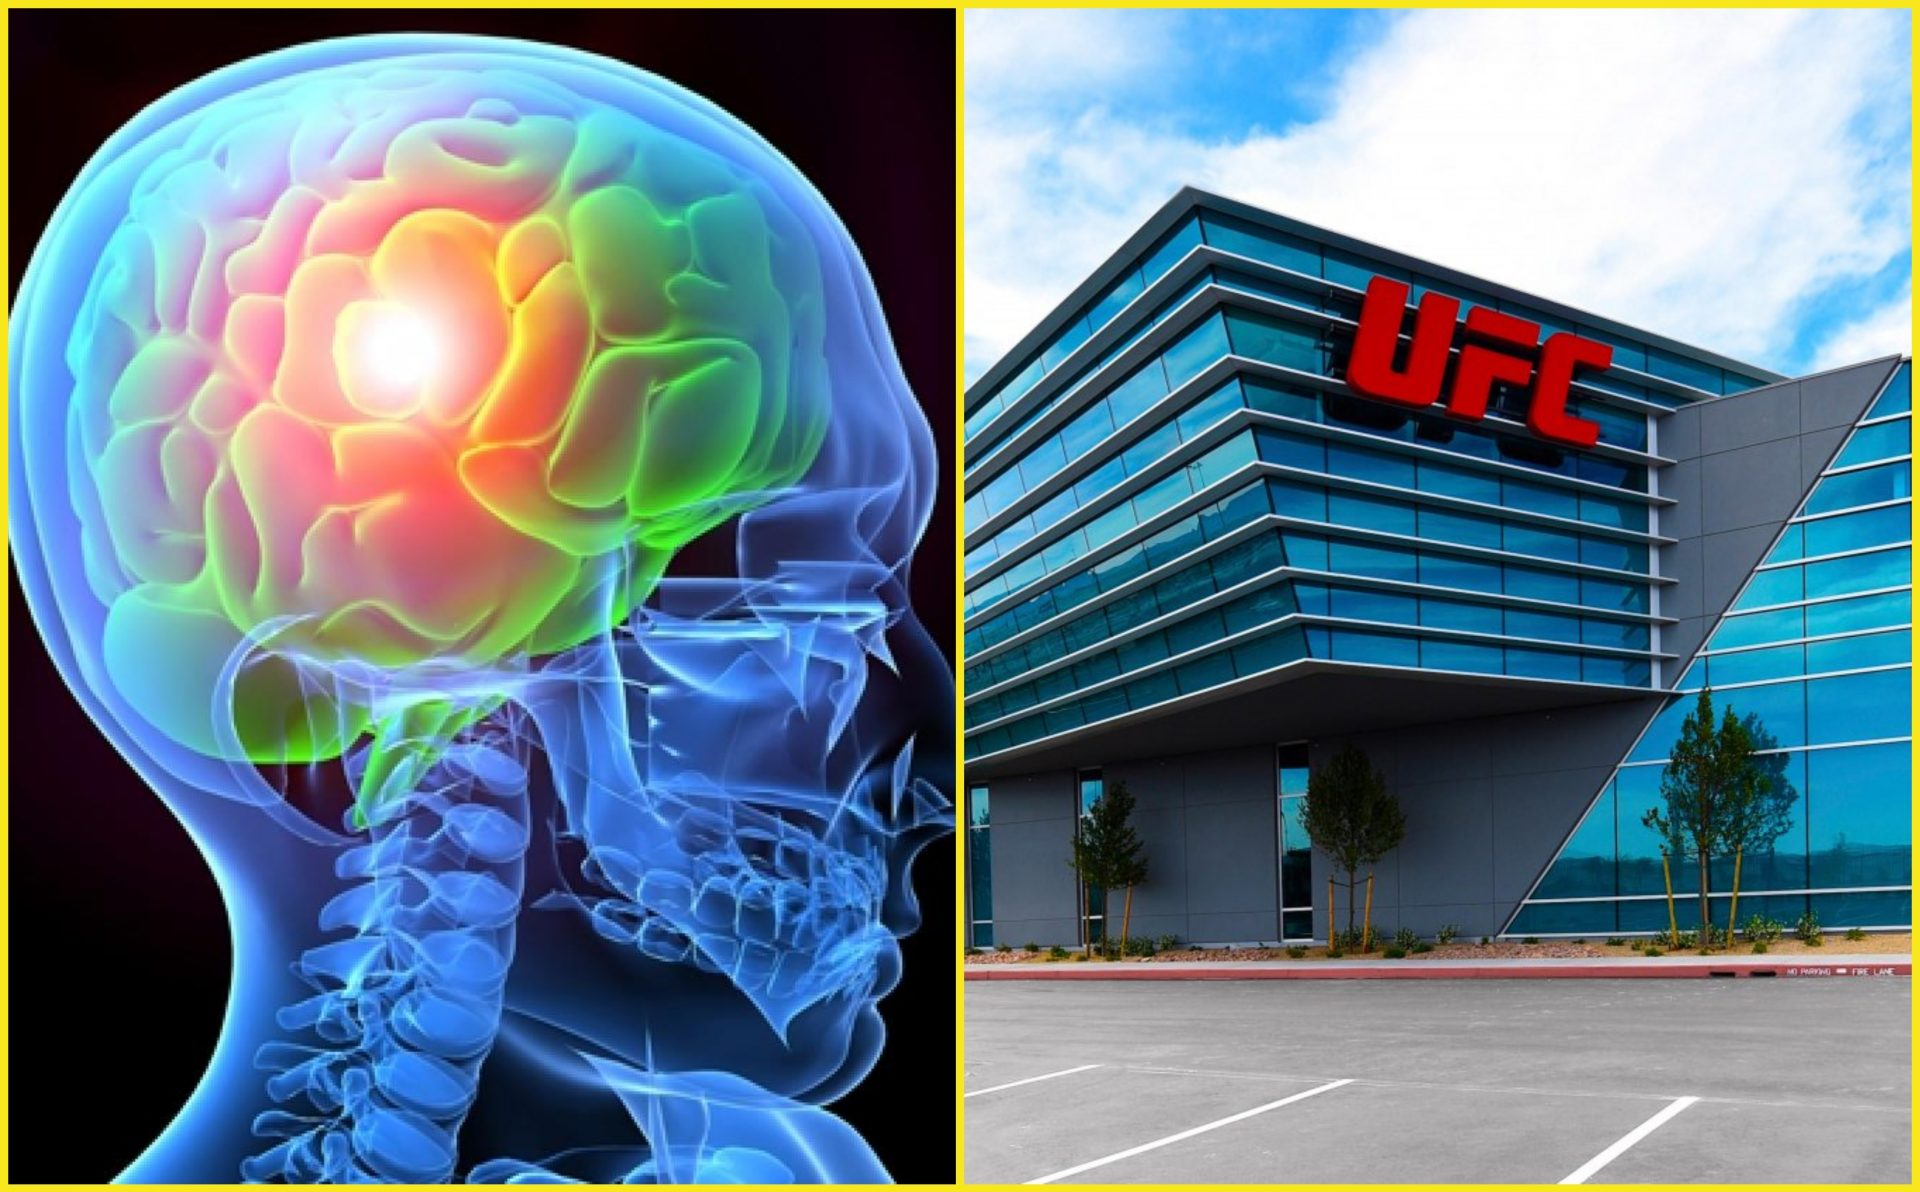 UFC contributes $1 Million towards brain research with Cleveland Clinic - Brain